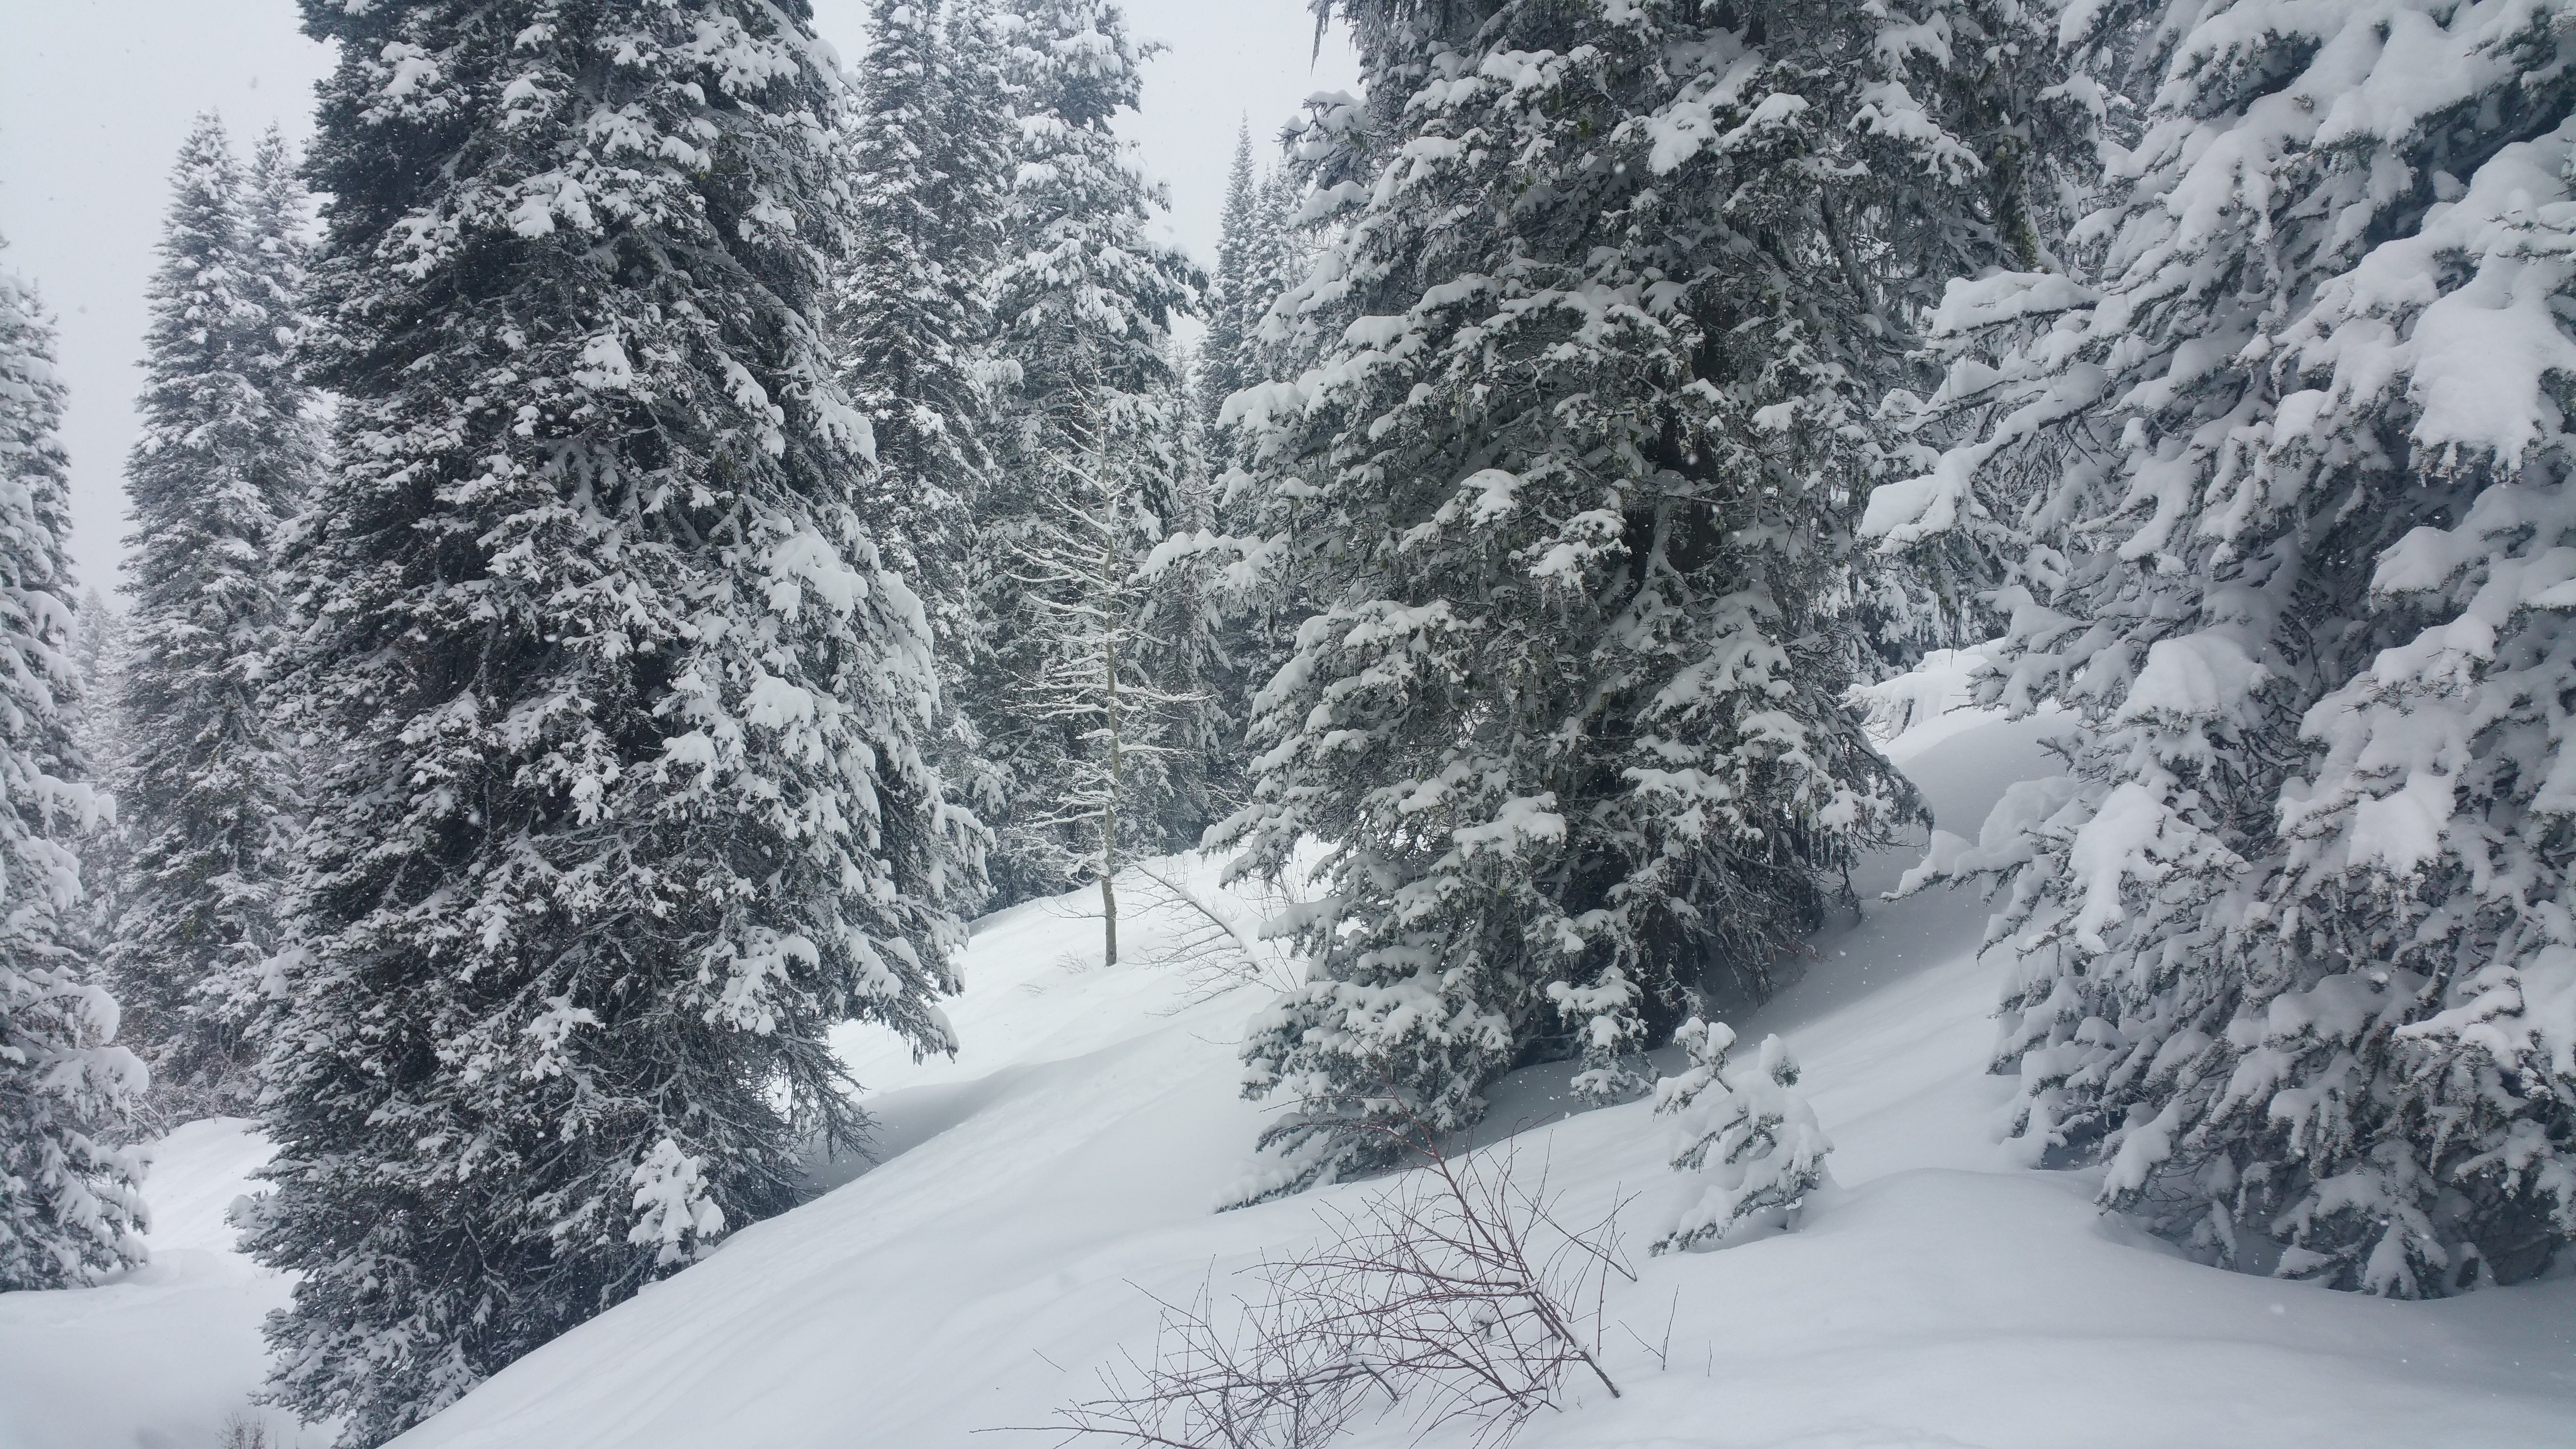 tree-skiing-March-16-2016